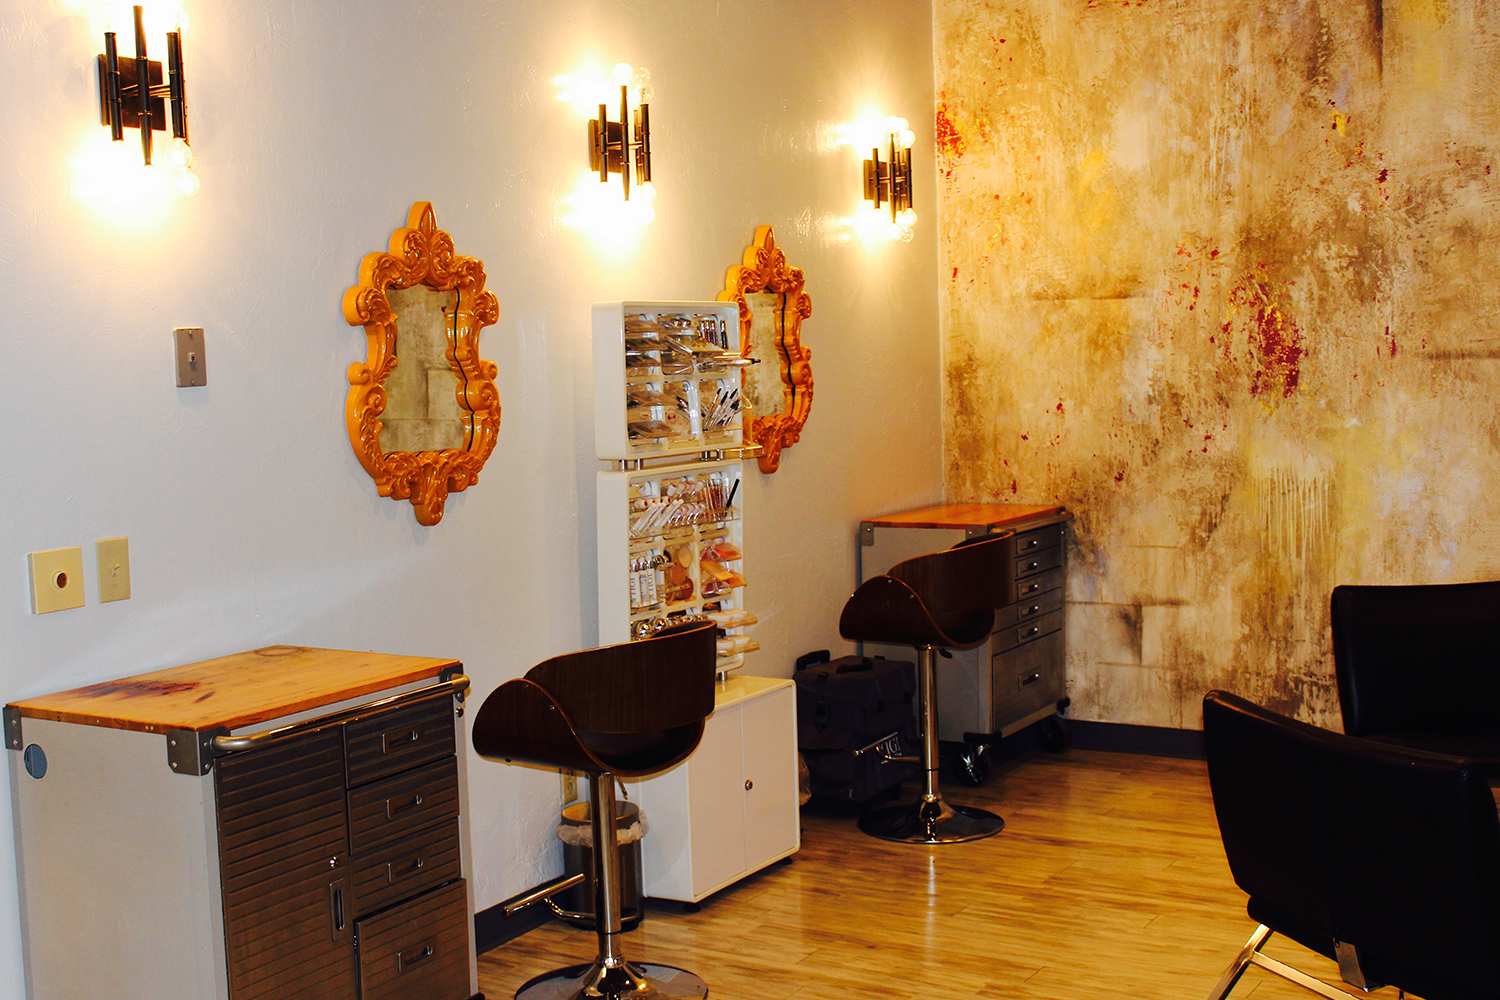 Home dk salon for 9309 salon oklahoma city